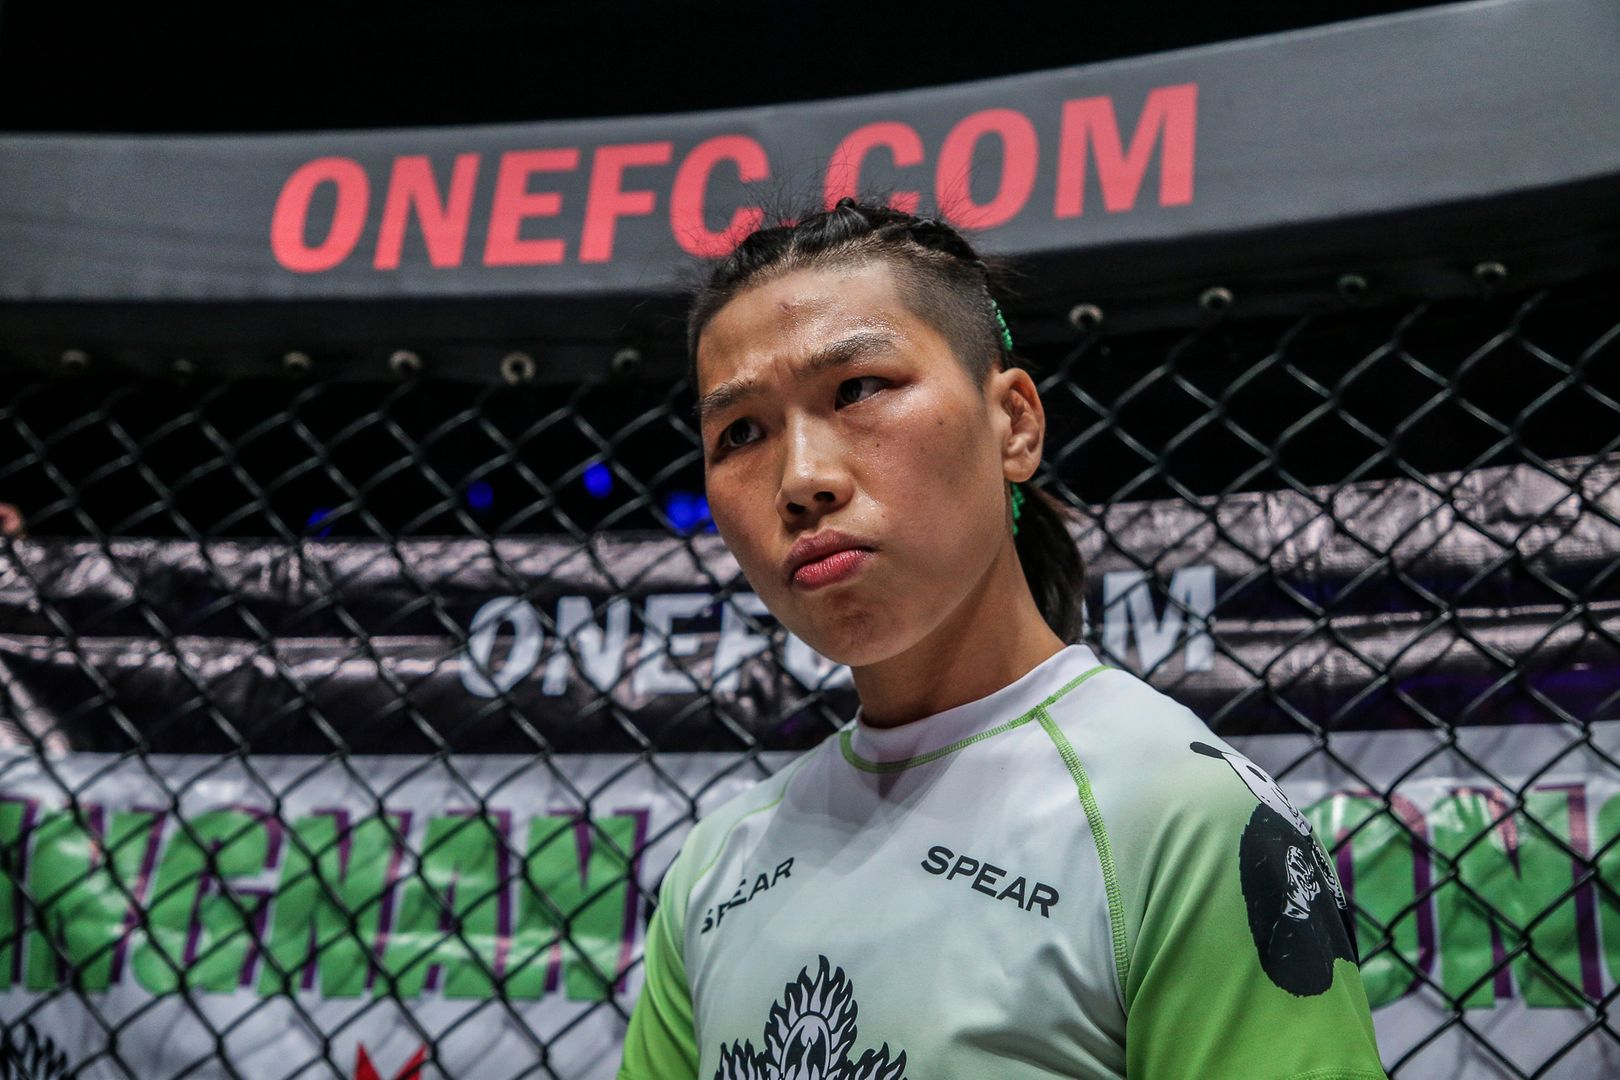 ONE Women's Strawweight World Champion Xiong Jing Nan ready for her battle with Angela Lee at ONE: A NEW ERA